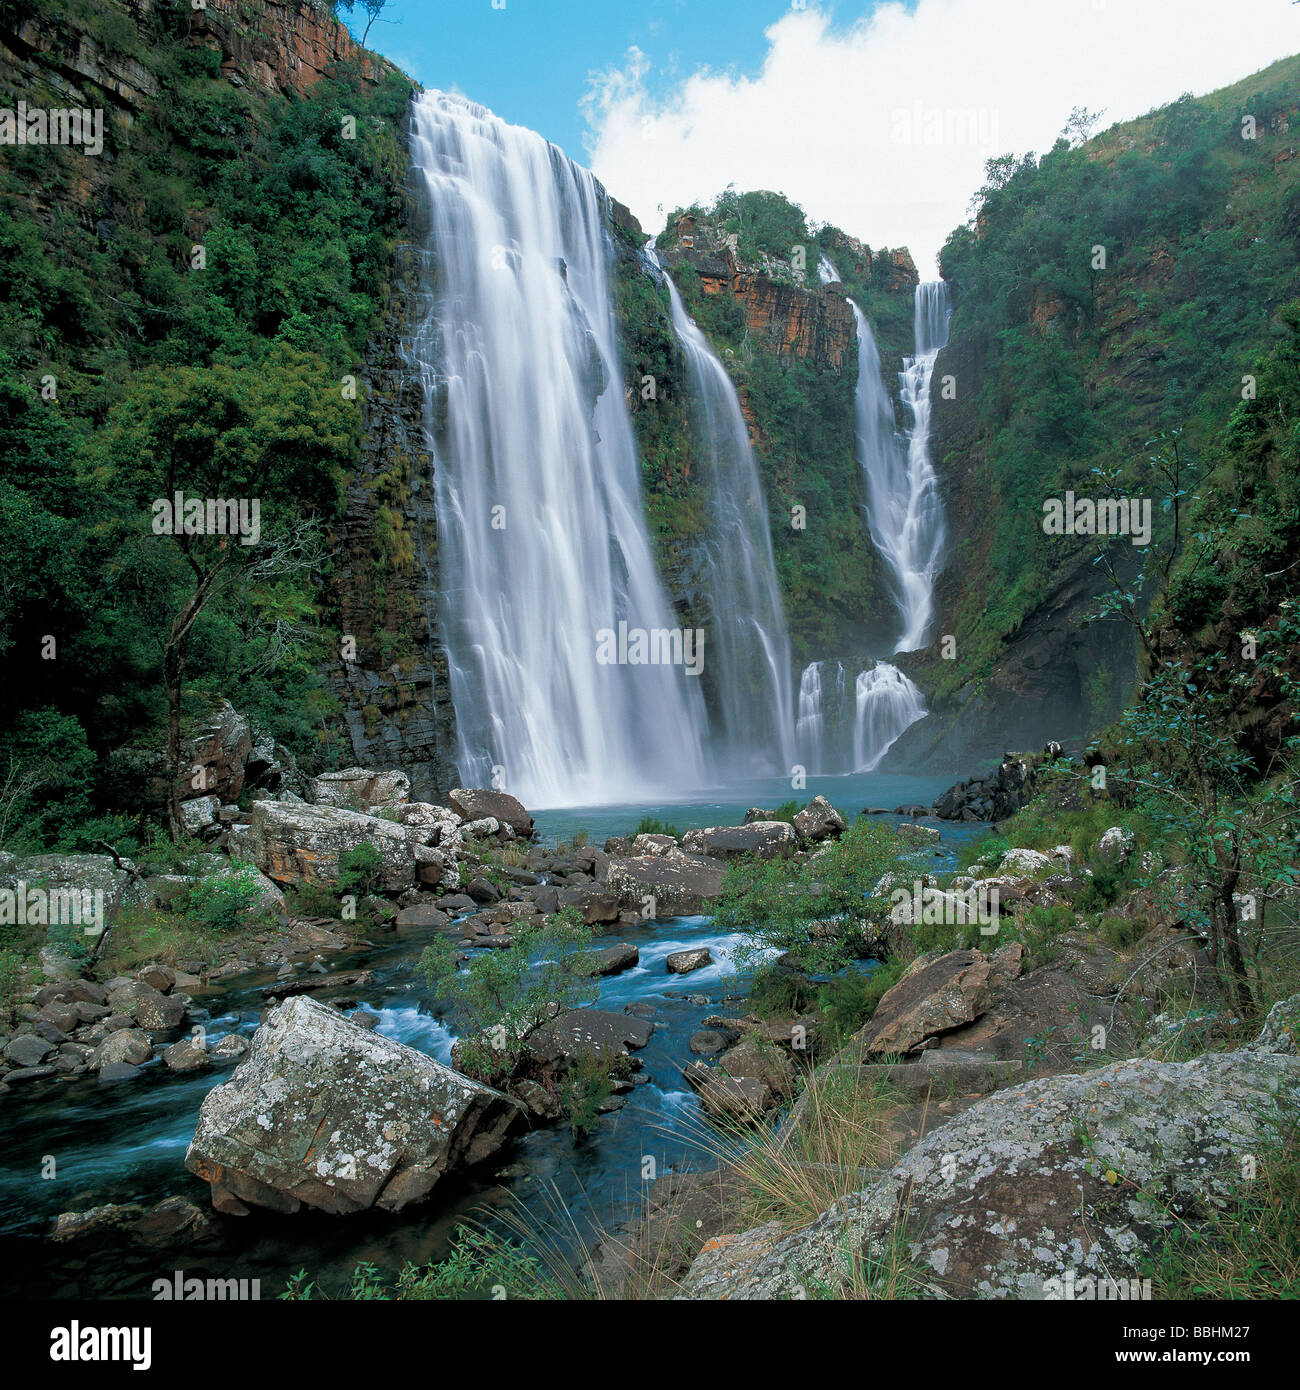 THE HIGHVELD IS KNOWN FOR THE SCENIC APPEAL OF ITS MANY WATERFALLS - Stock Image